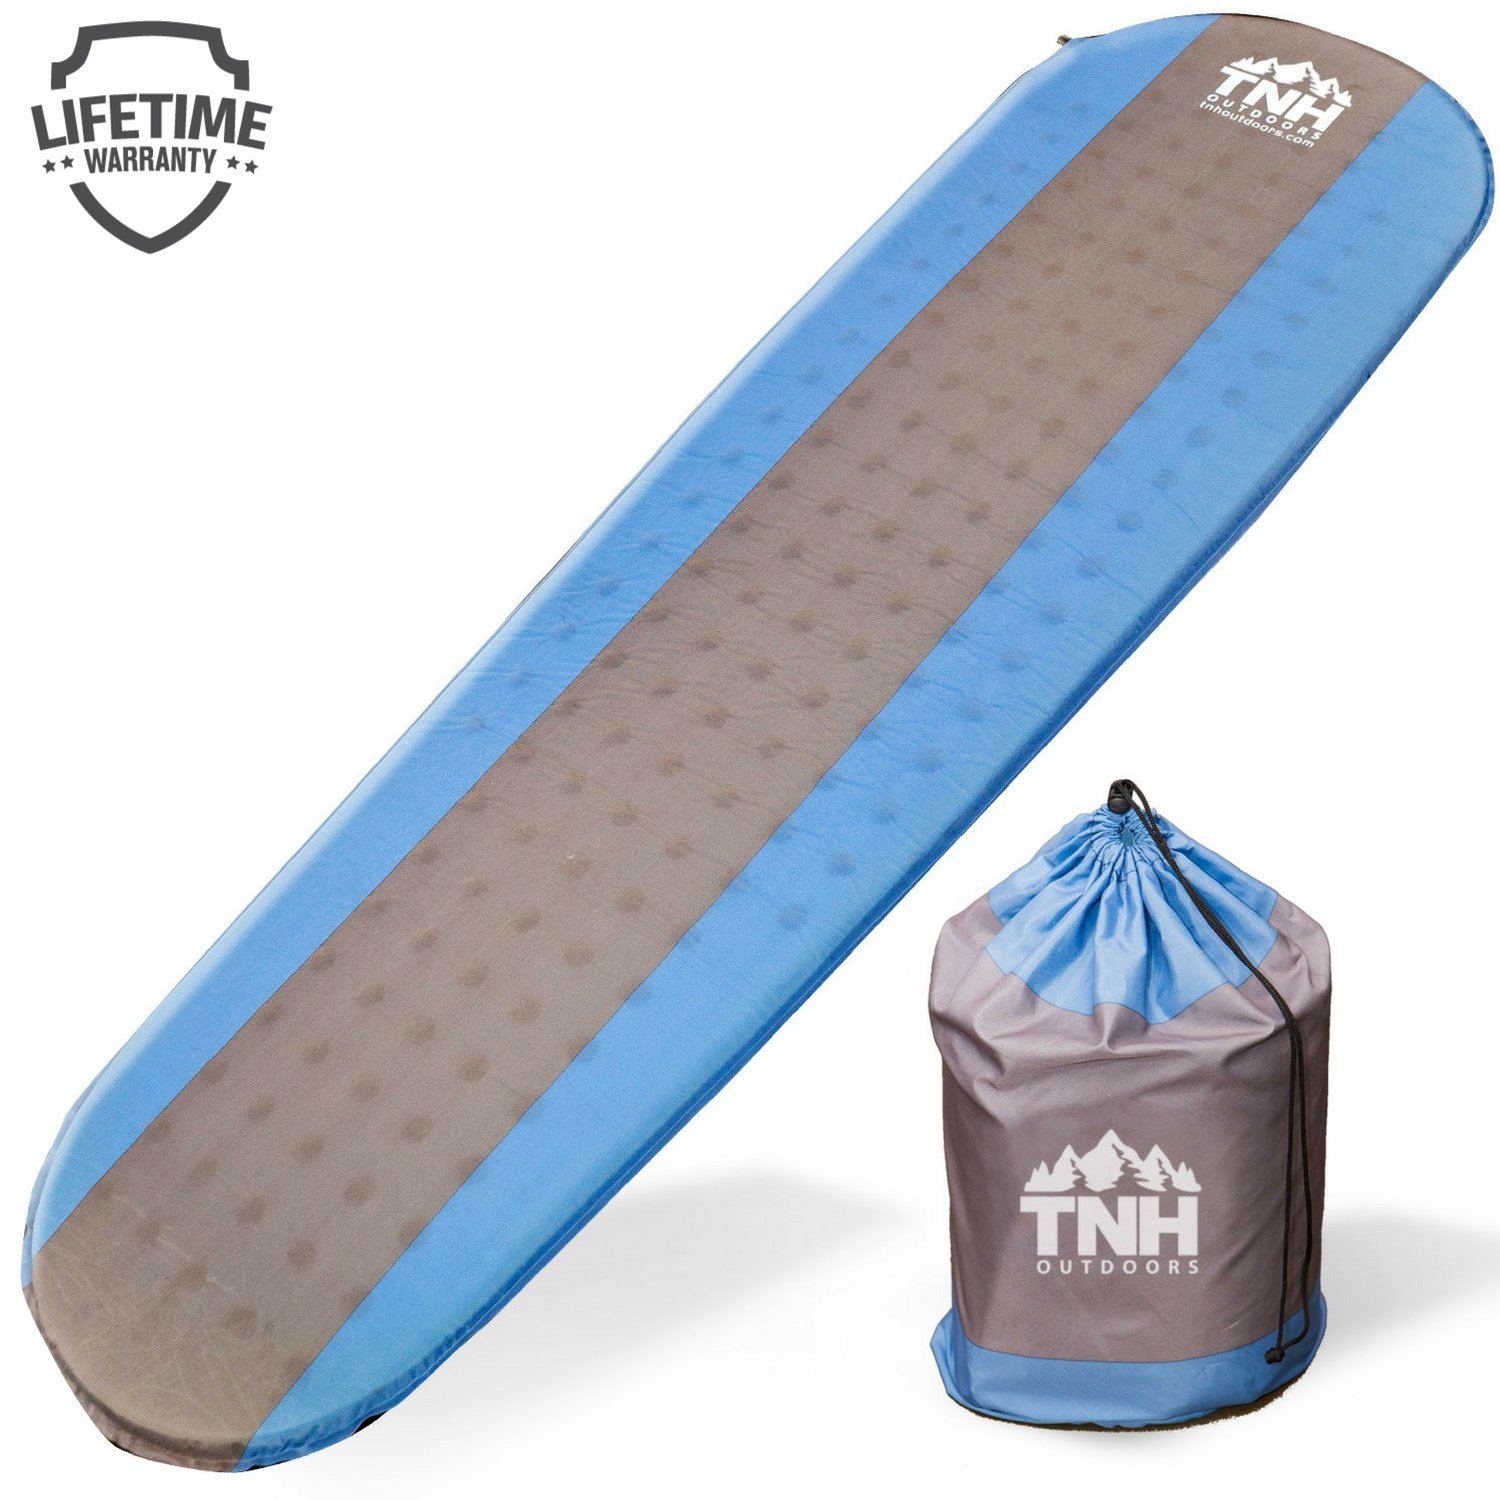 #1 Premium Self Inflating Sleeping Pad Lightweight Foam Padding and Superior Insulation Great For Hiking & Camping Thick Outer Skin TNH Outdoors FBA_2001